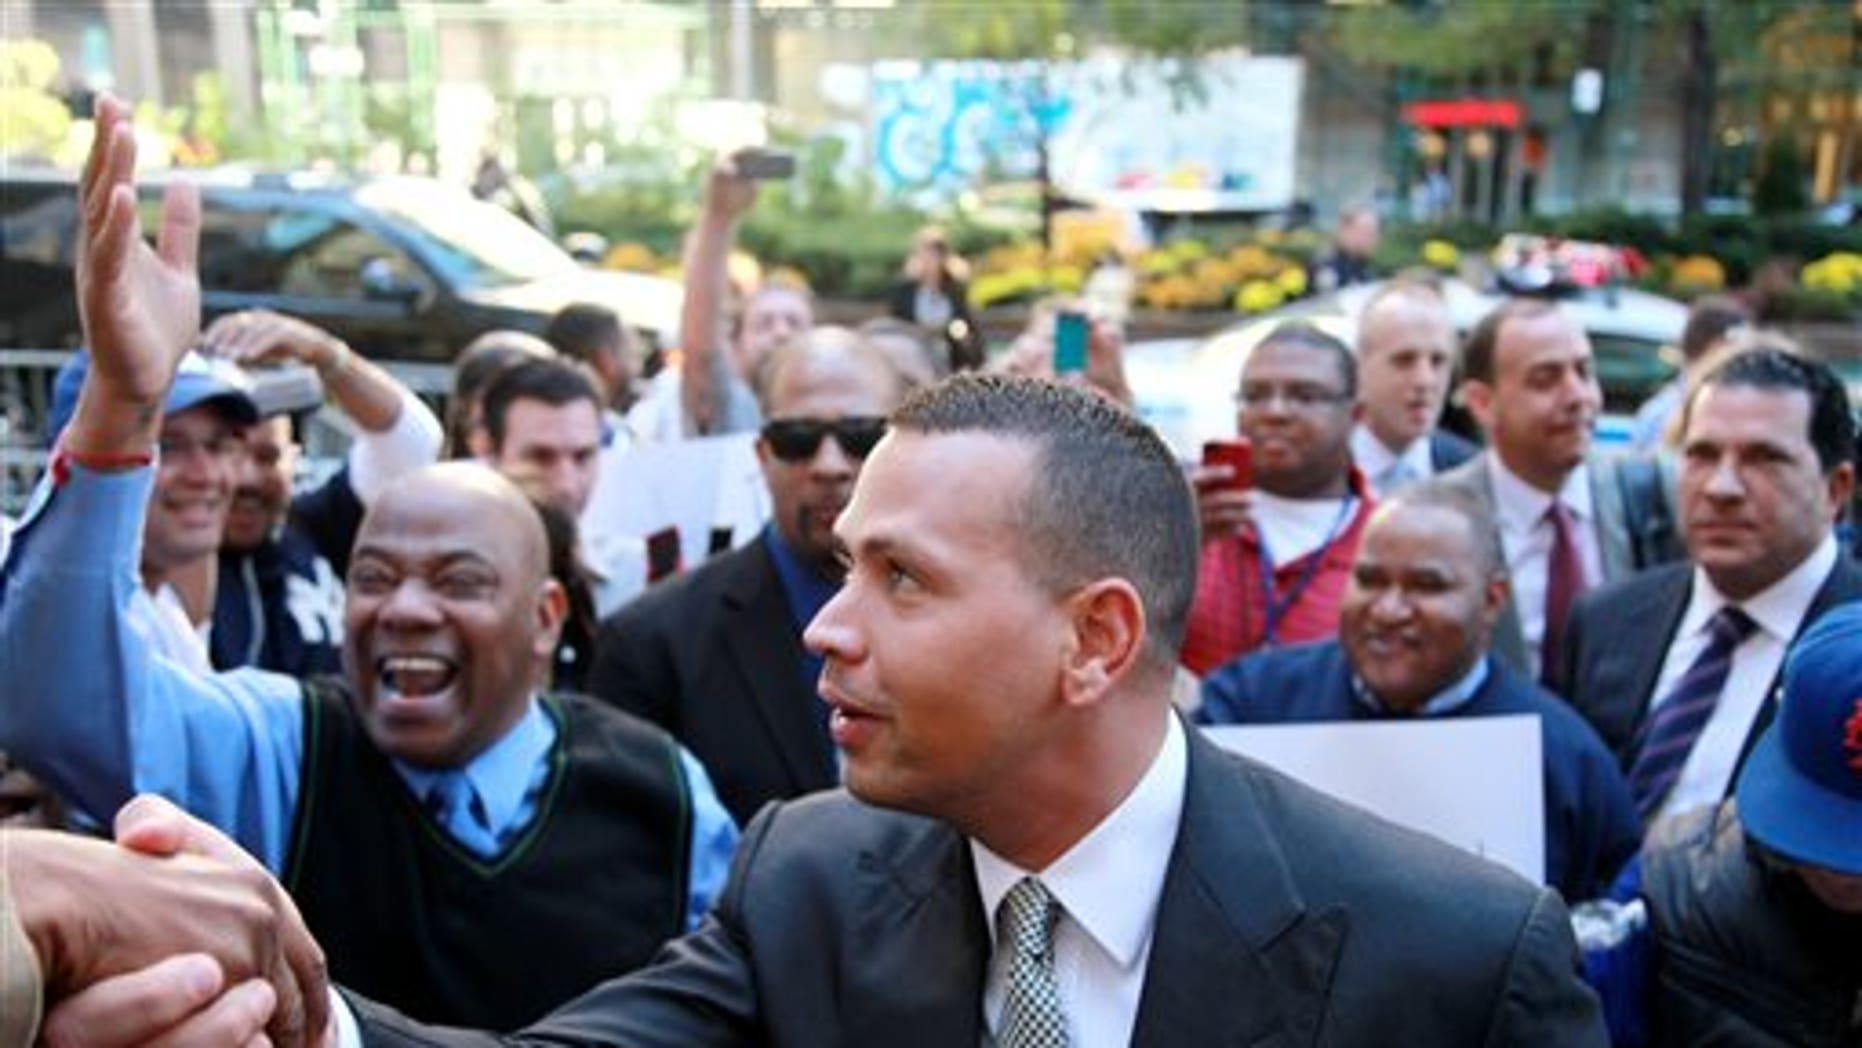 FILE - In this Oct. 1, 2013, file photo, New York Yankees' Alex Rodriguez arrives at the offices of Major League Baseball in New York. Rodriguez's 211-game suspension was the longest of the 13 announced in August for players connected to a Florida anti-aging clinic accused of distributing banned PEDs. The Yankees' slugger was the only one to contest the penalty, and the year ends with an arbitrator yet to rule. (AP Photo/David Karp, File)